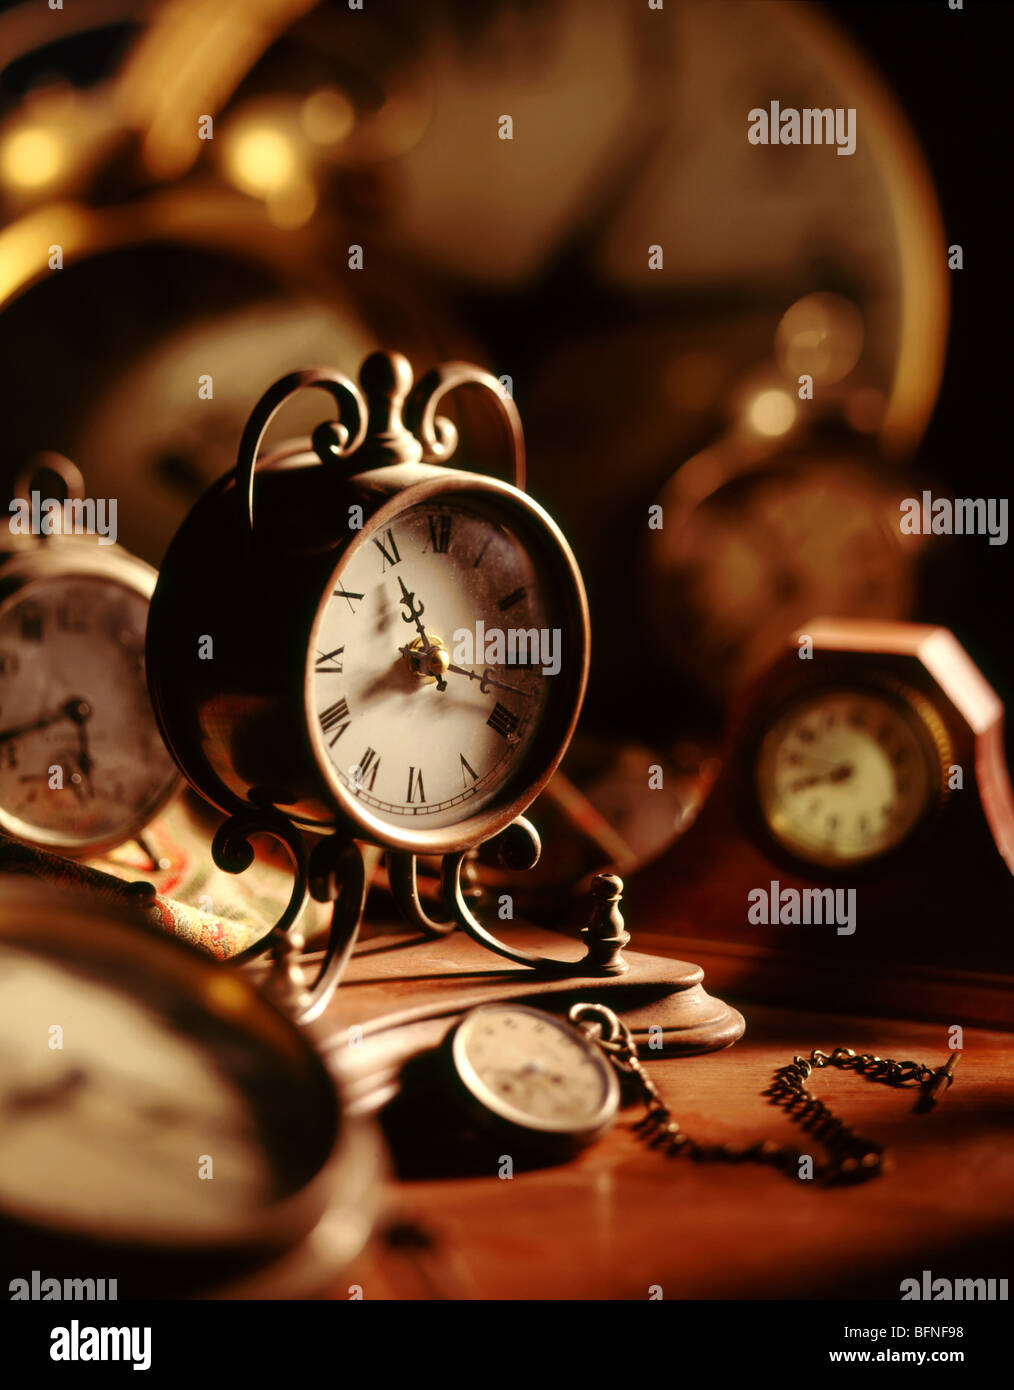 Old clocks and watches on desk - Stock Image